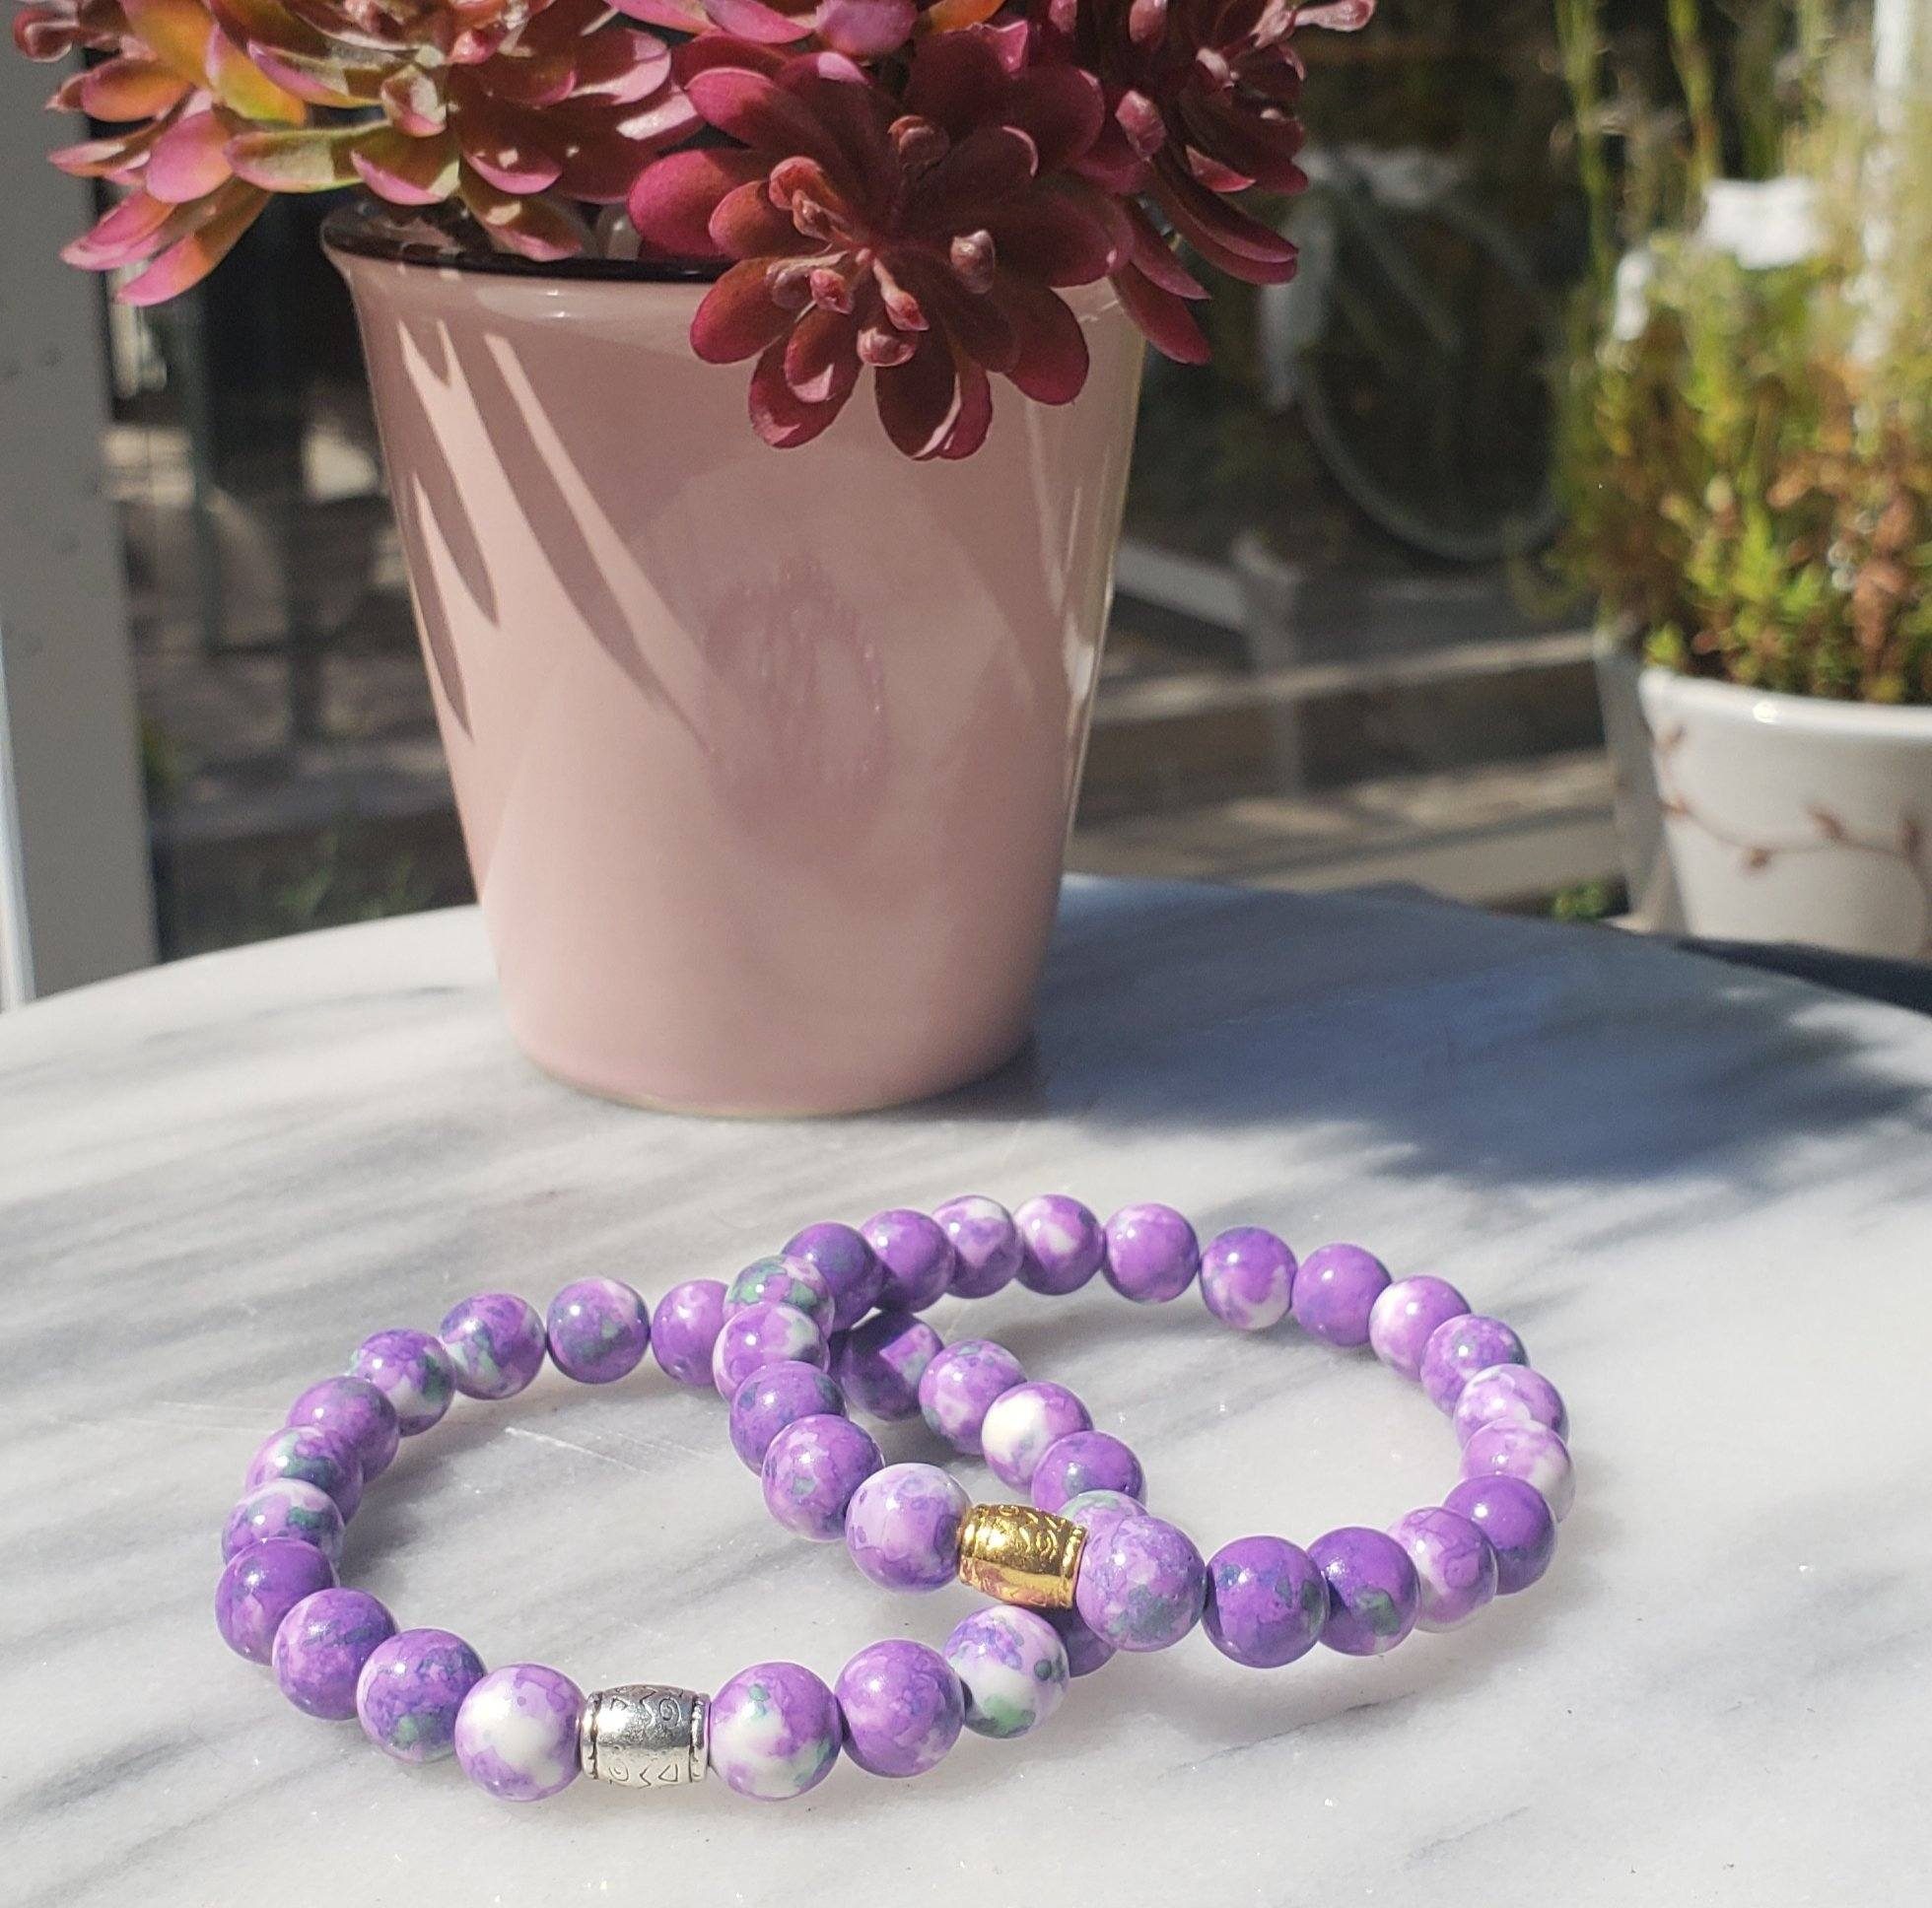 Purple Jade Gemstone Bracelet | Peace, Serenity, Intuition Bracelets Alora Boutique